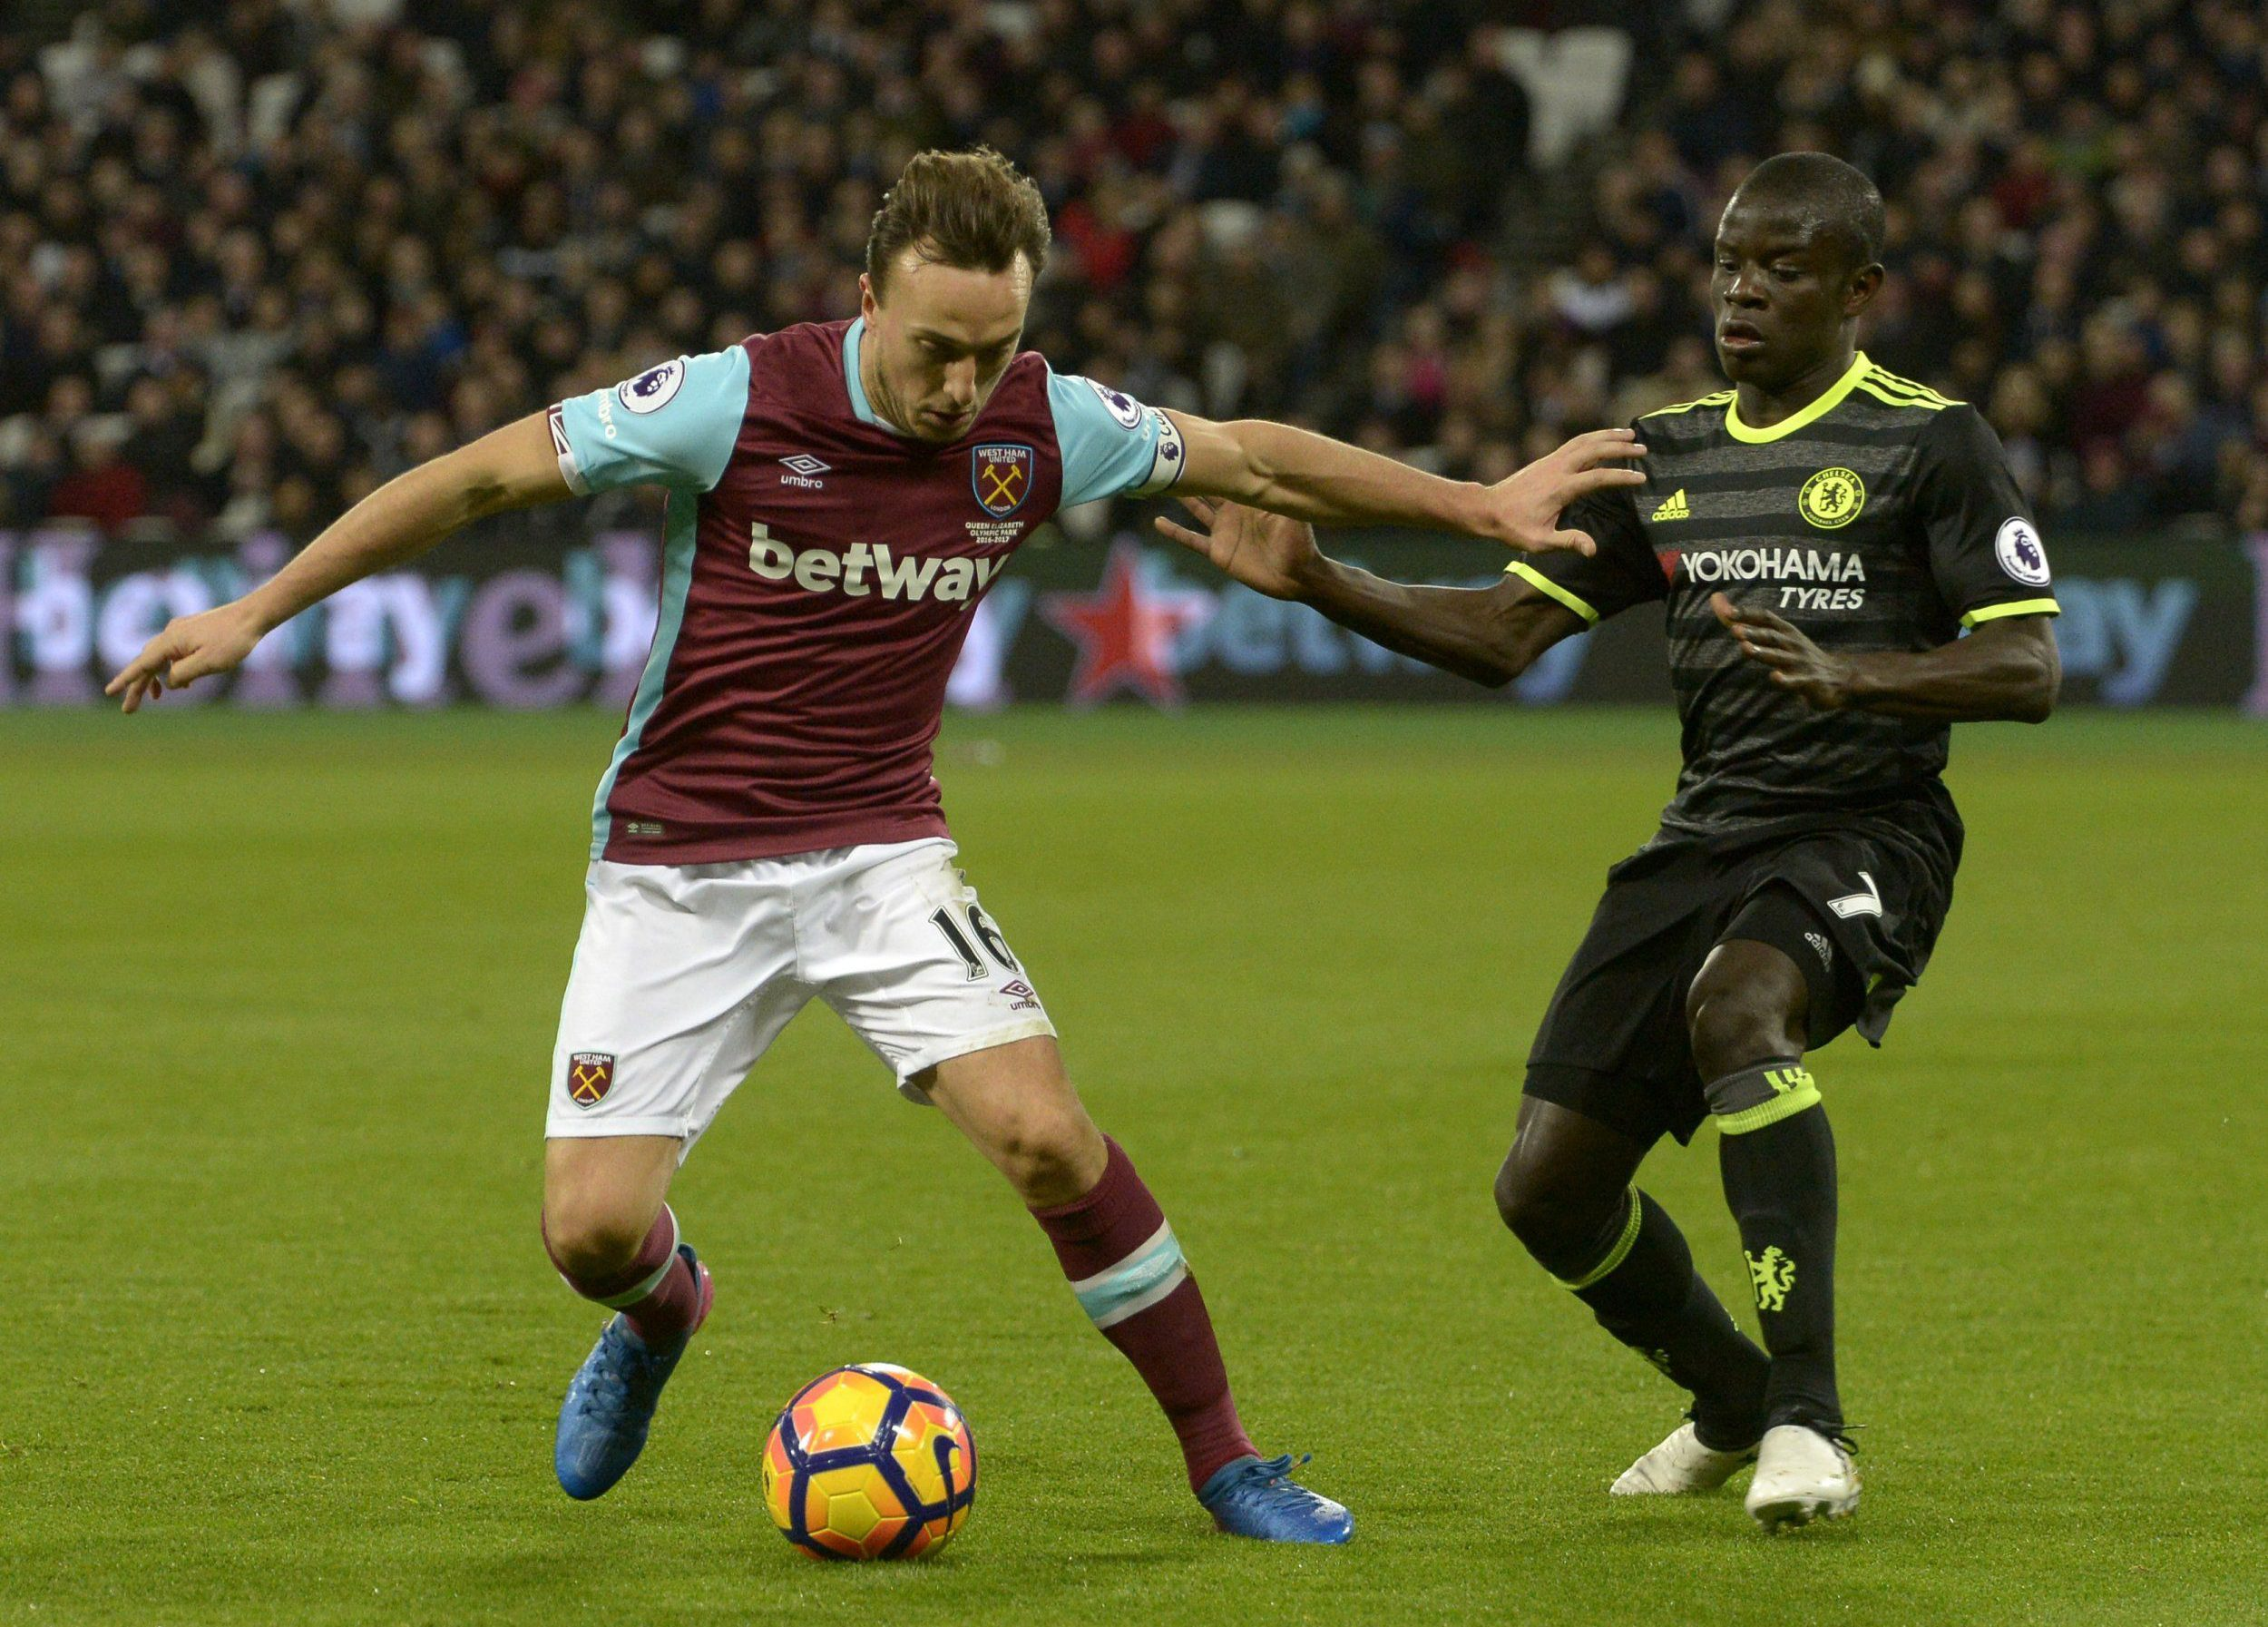 STRATFORD, ENGLAND - MARCH 06: Mark Noble of West Ham United in action with N'Golo Kante of Chelsea during the Premier League match between West Ham United and Chelsea at London Stadium on March 6, 2017 in Stratford, England. (Photo by Arfa Griffiths/West Ham United via Getty Images)